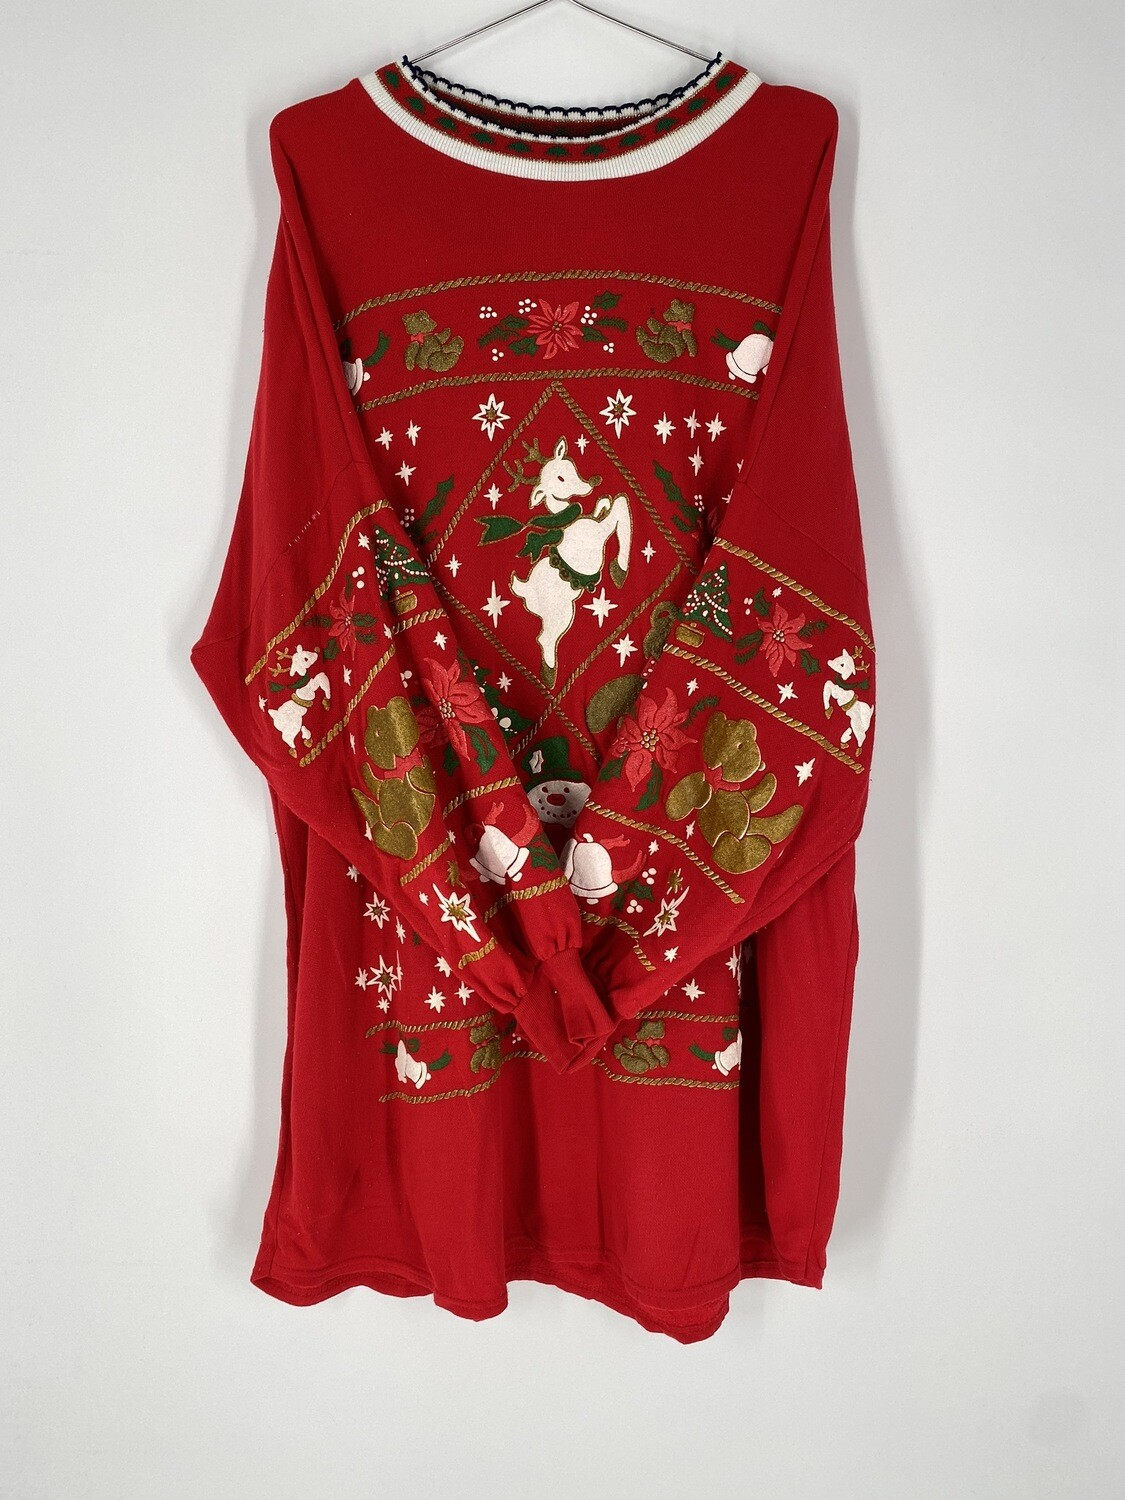 Red Holiday Sweatshirt Dress Size L